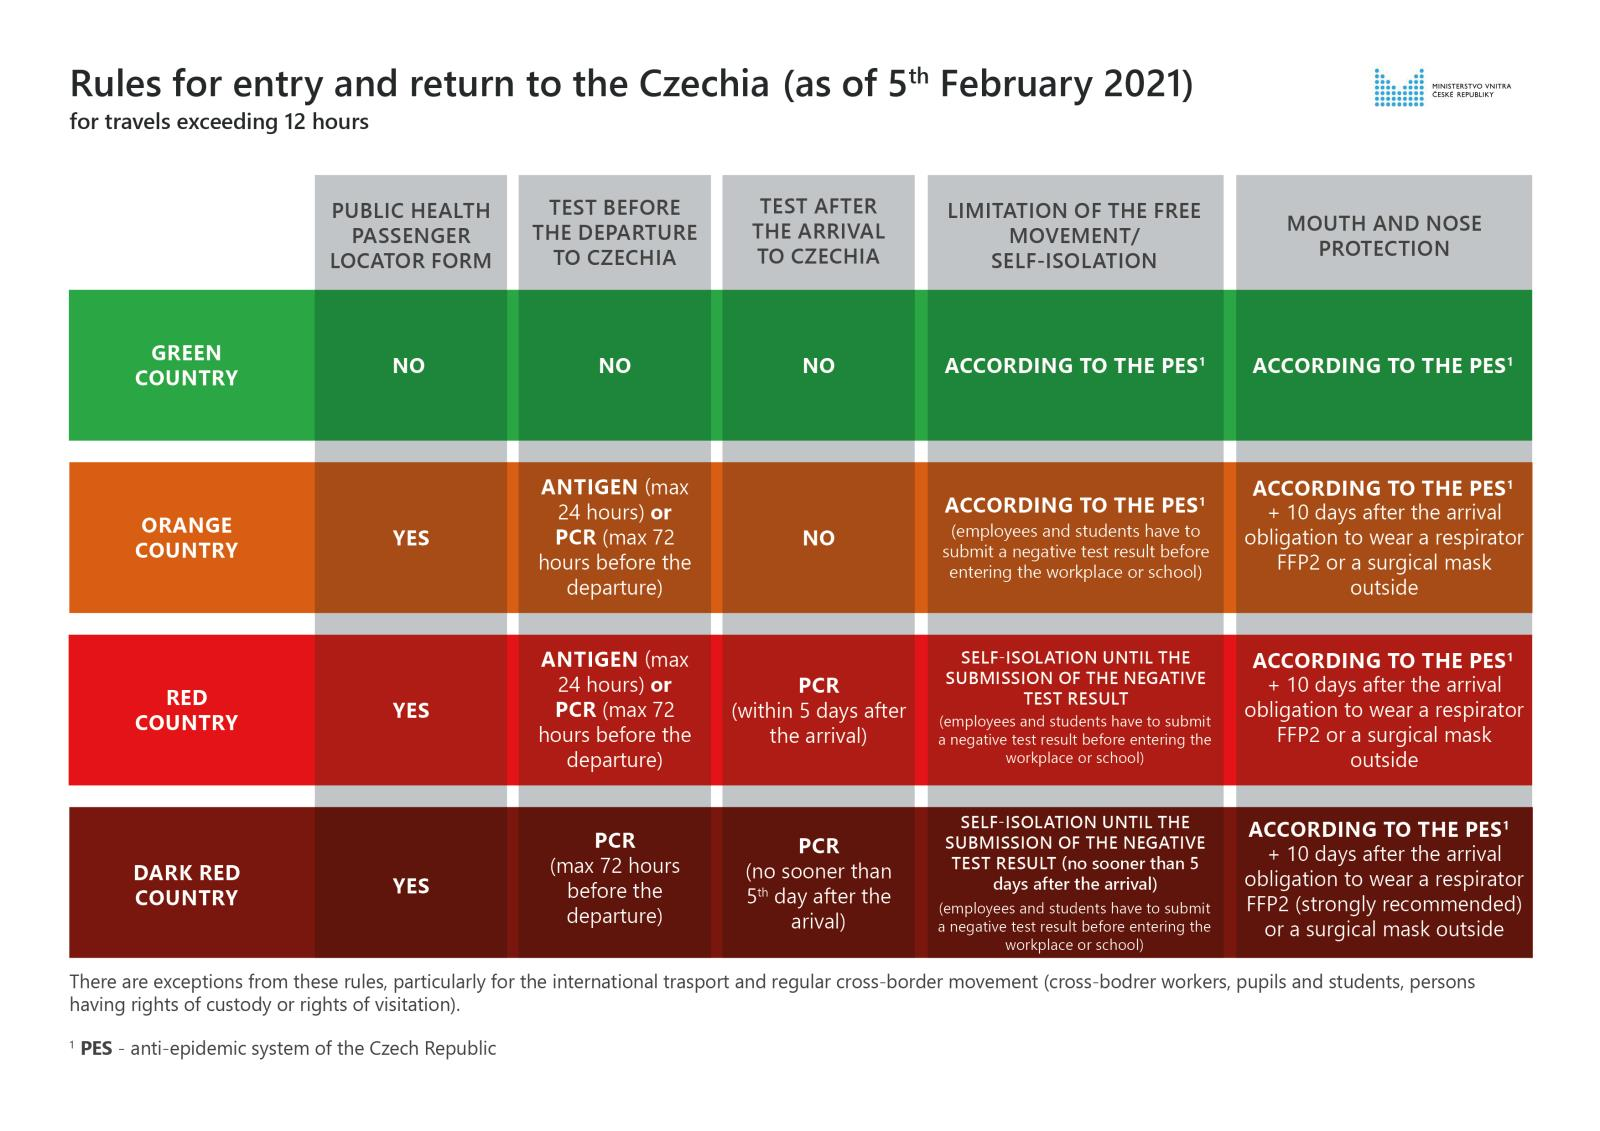 Rules_for_entry_and_return_to_the_Czechia_as_of_February_5th_2021_-_20210203v2.jpg